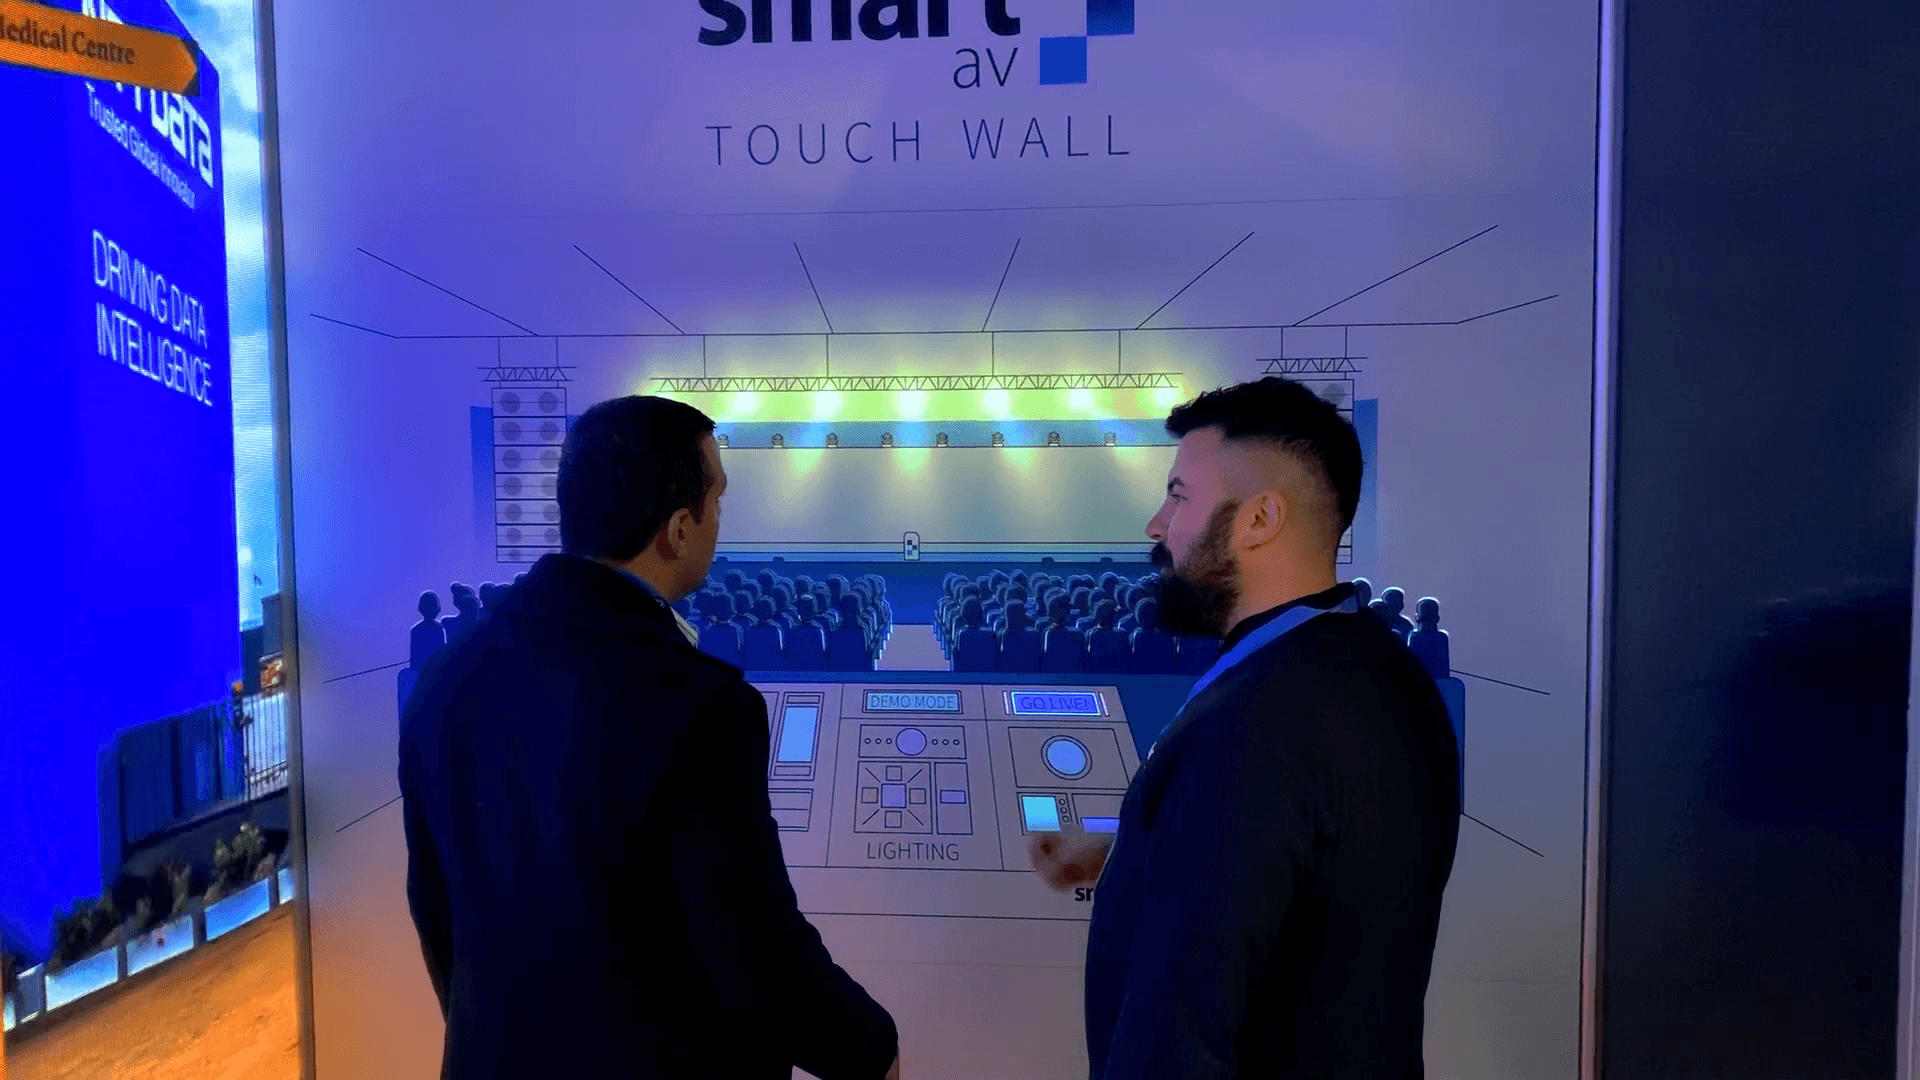 Smart_AV_Interactive_Touch_Wall5.png